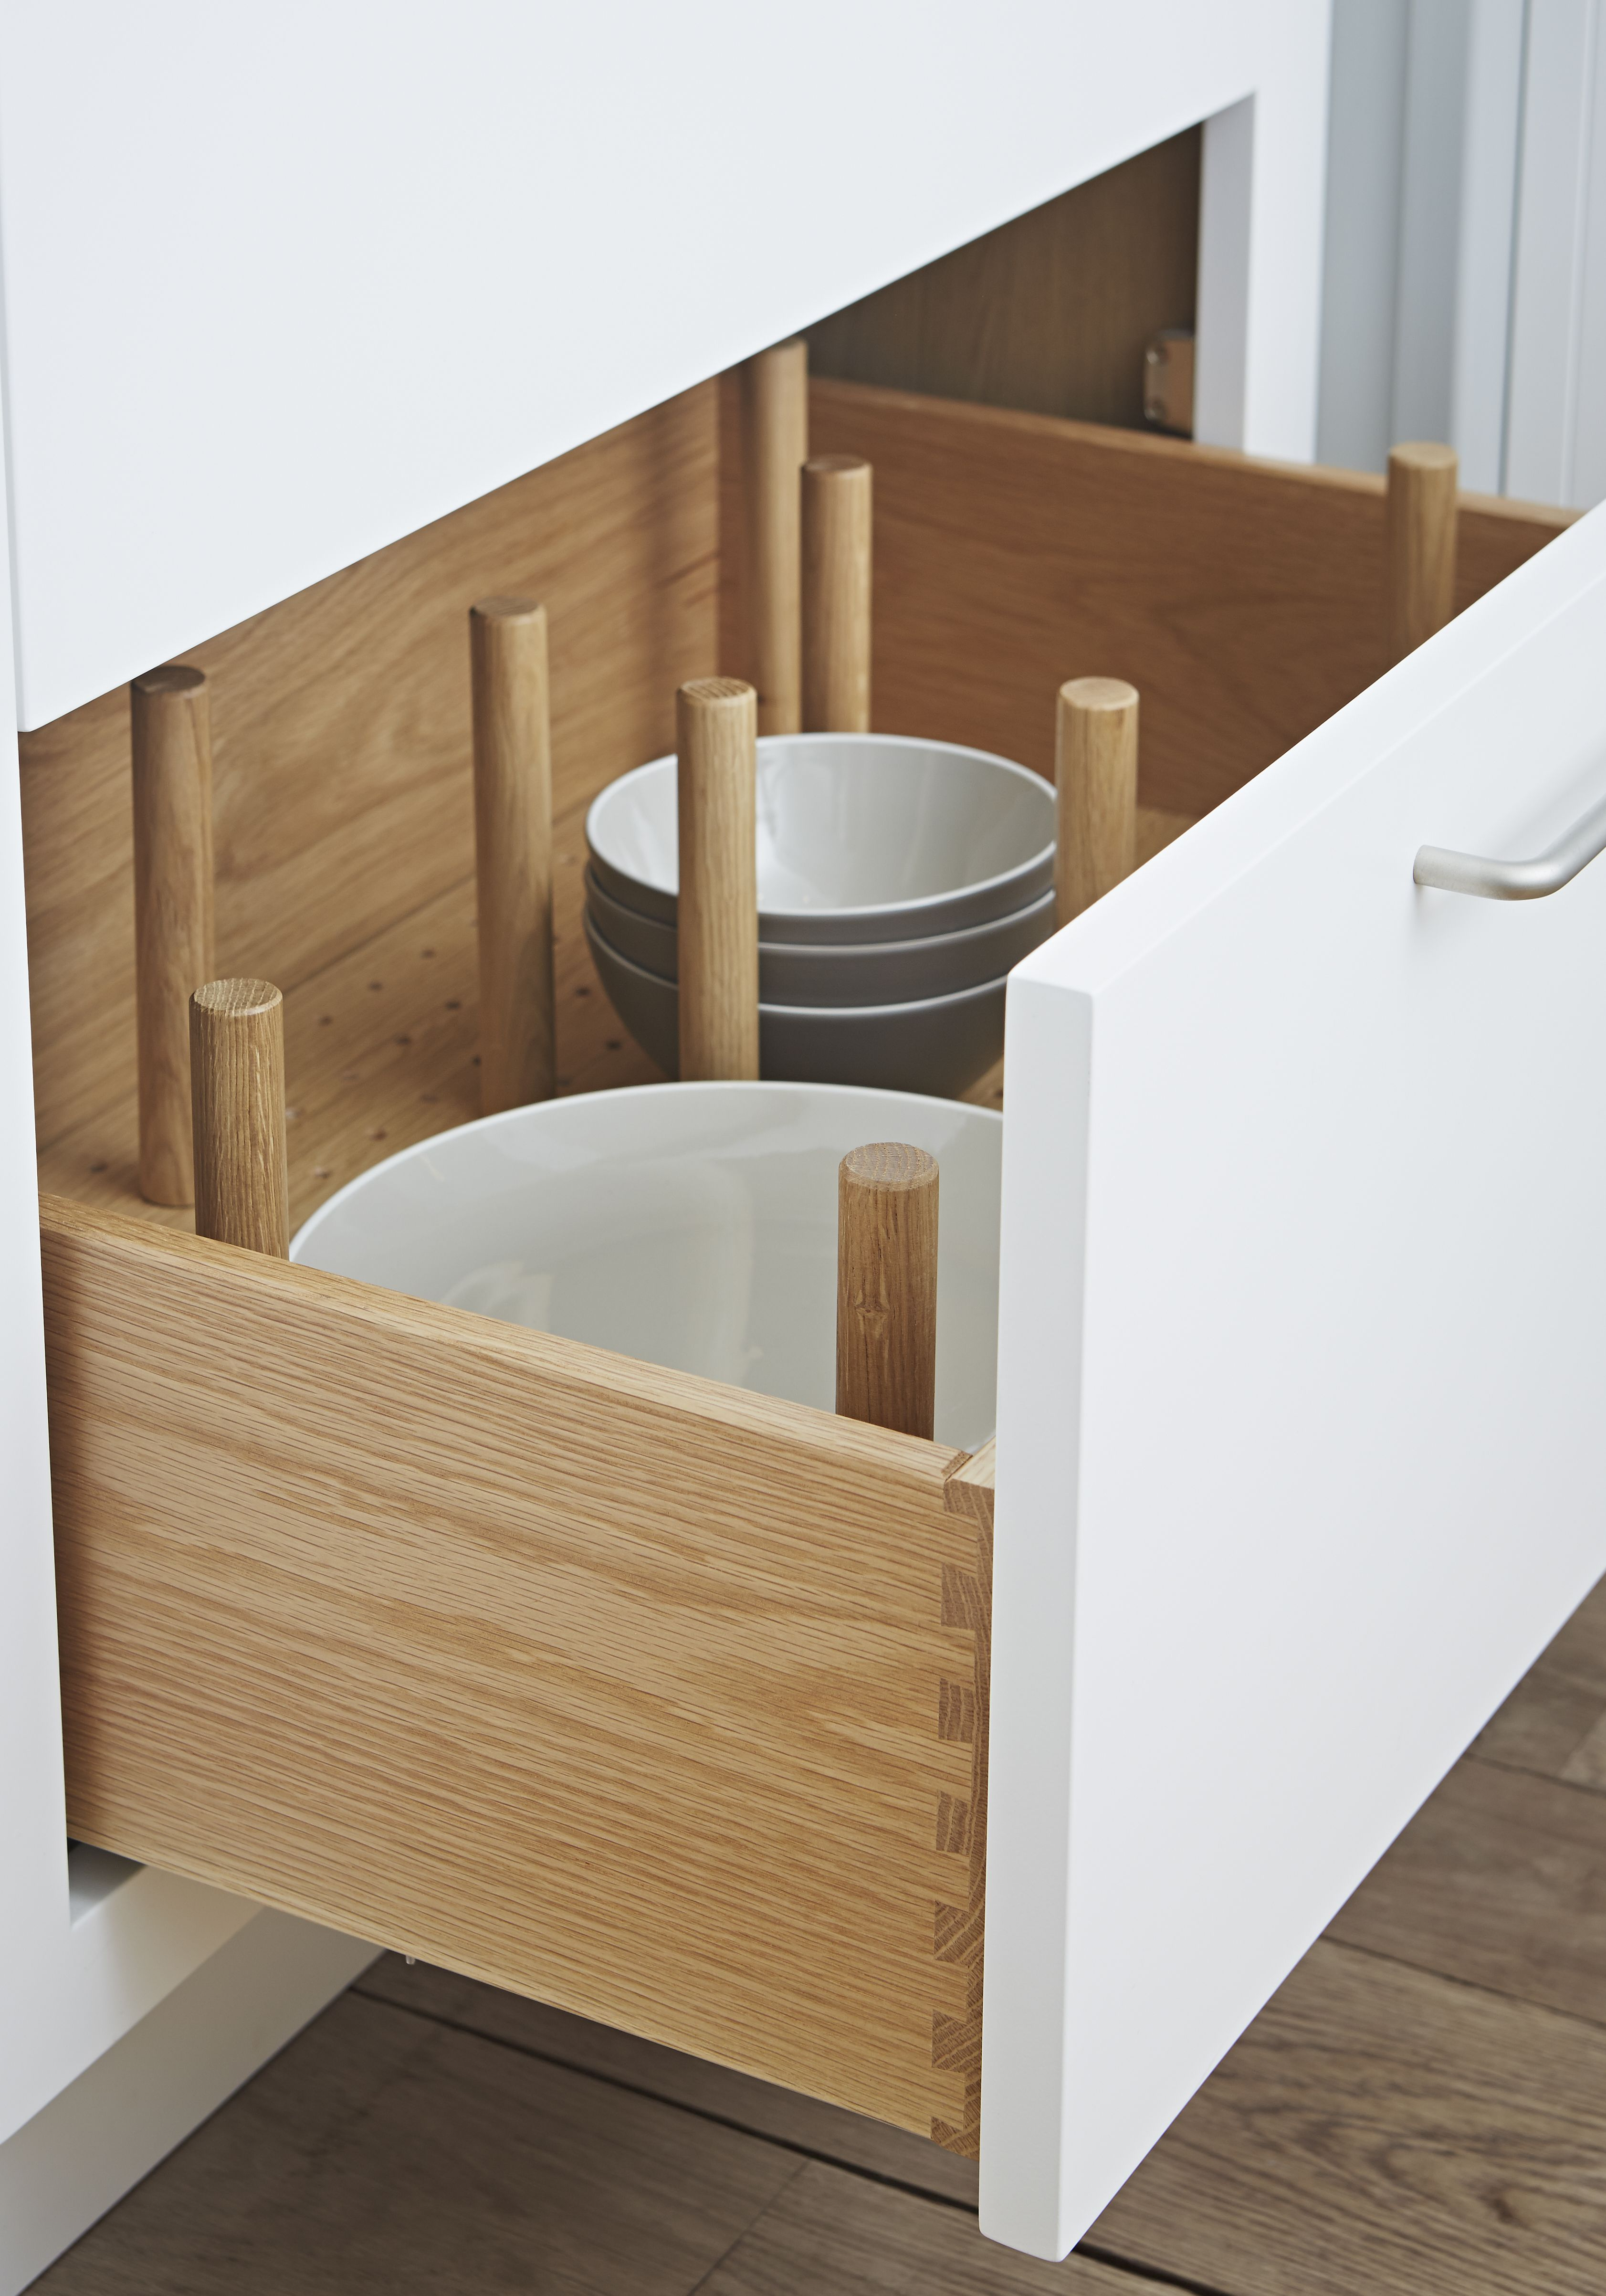 Stylish Storage Solutions   Urban Kitchen From John Lewis Of Hungerford.  Http://